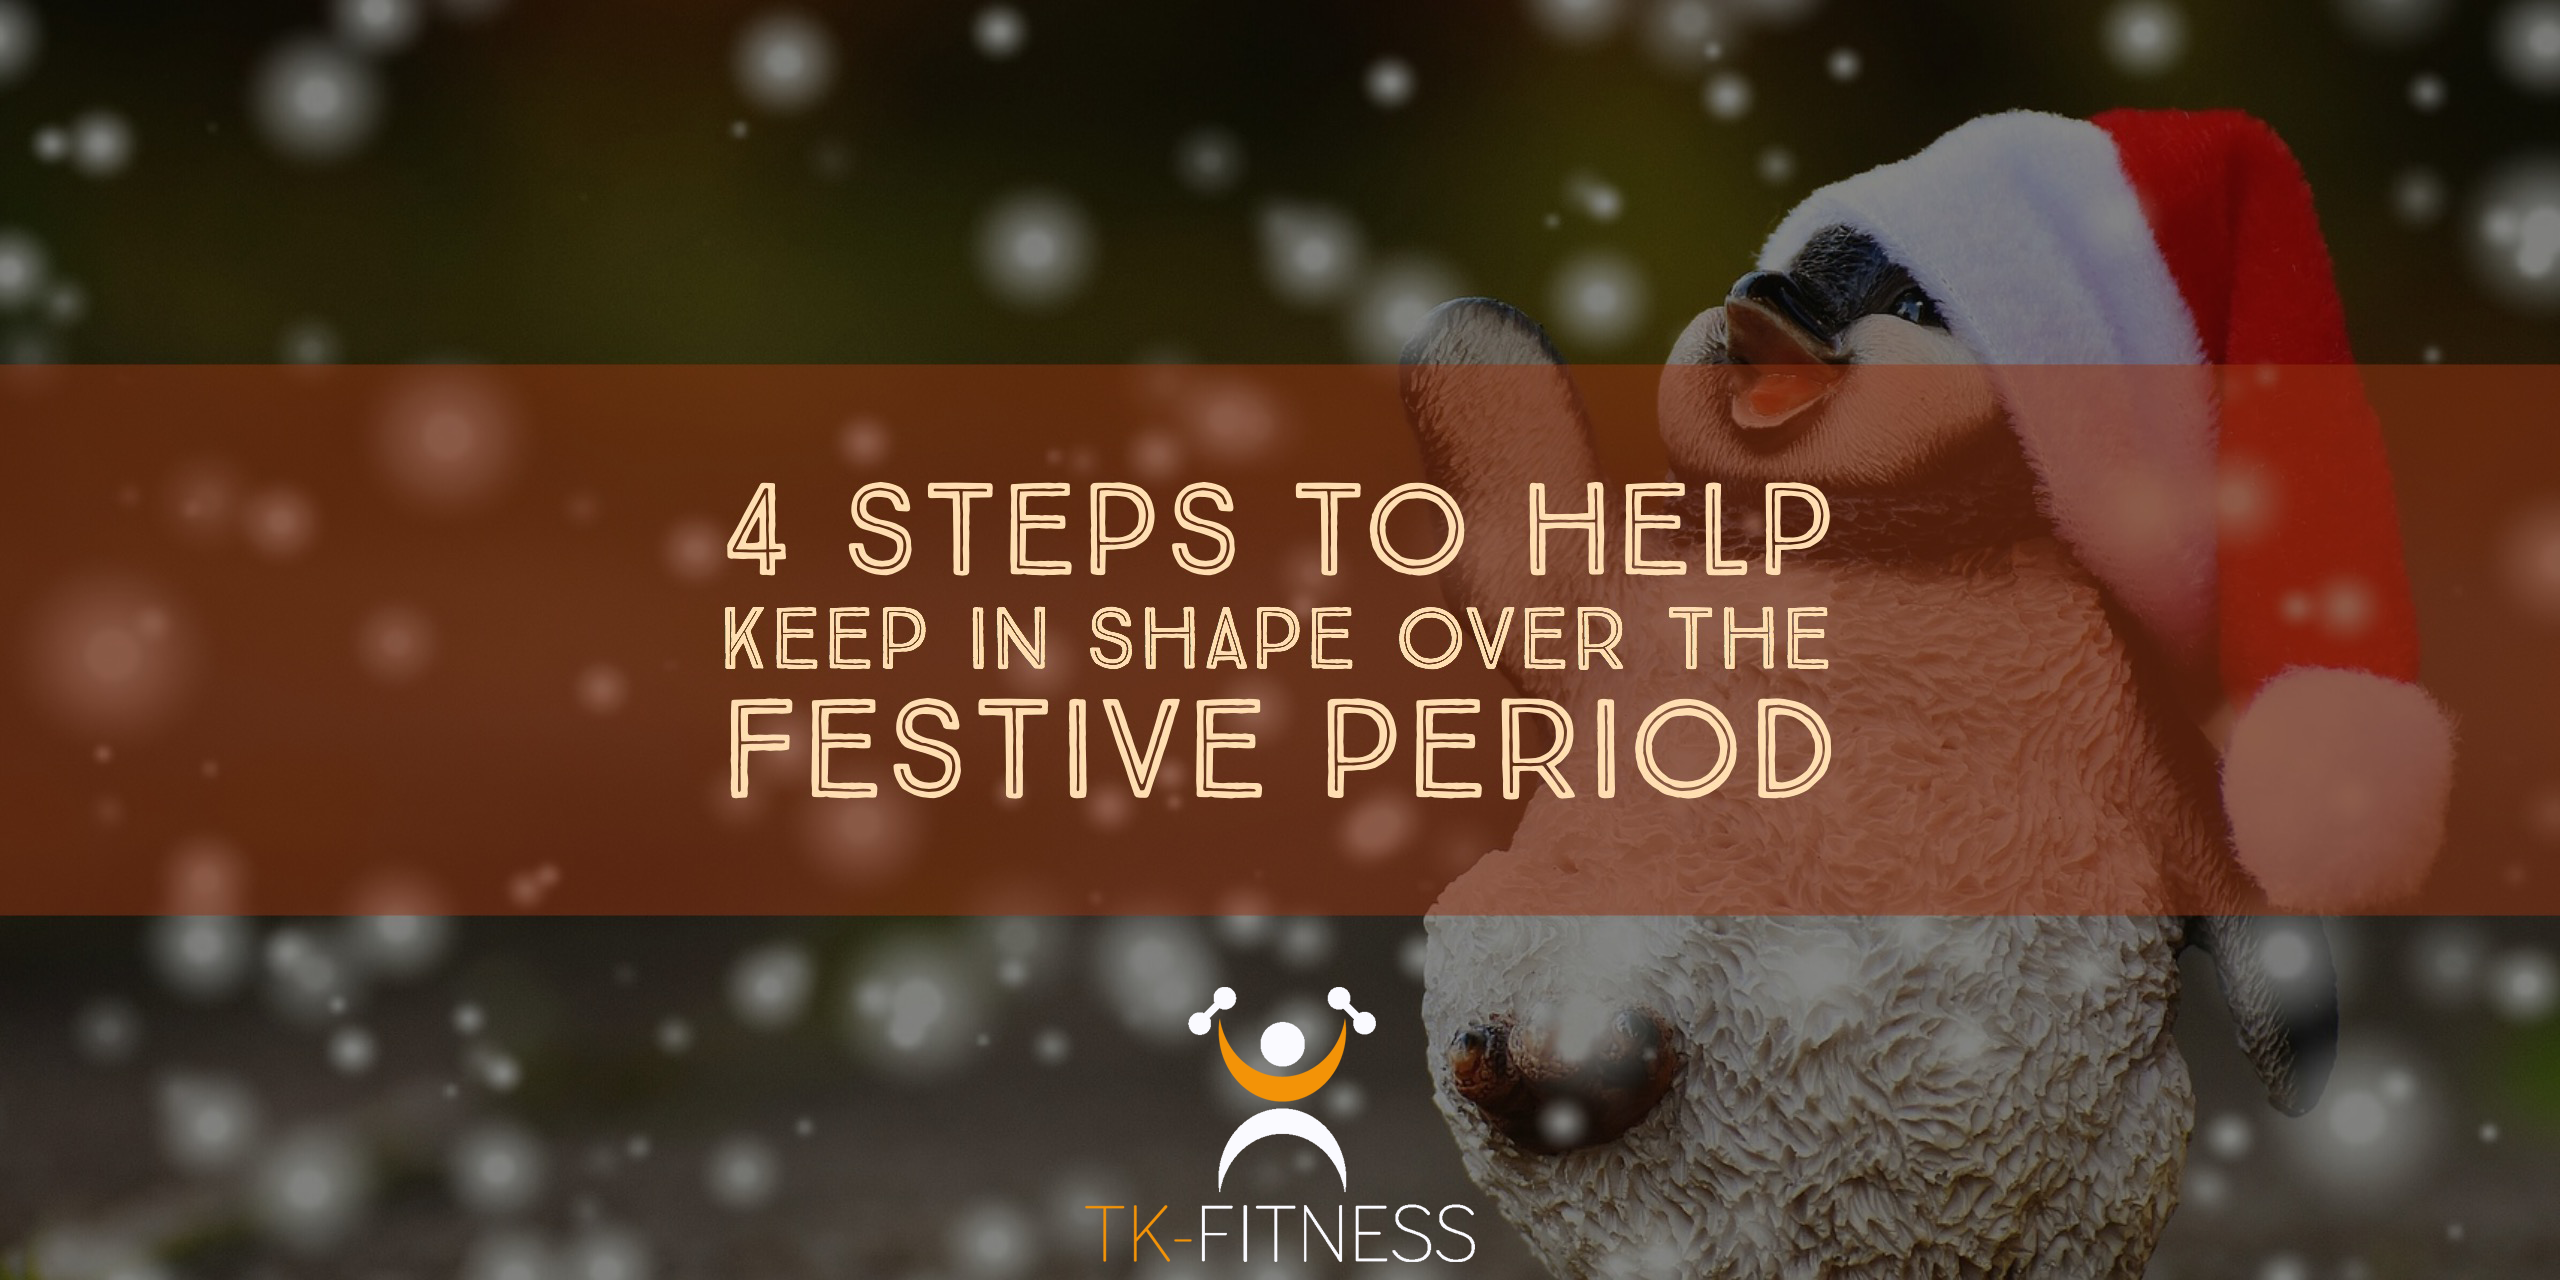 4 Steps to help keep in shape over the festive period